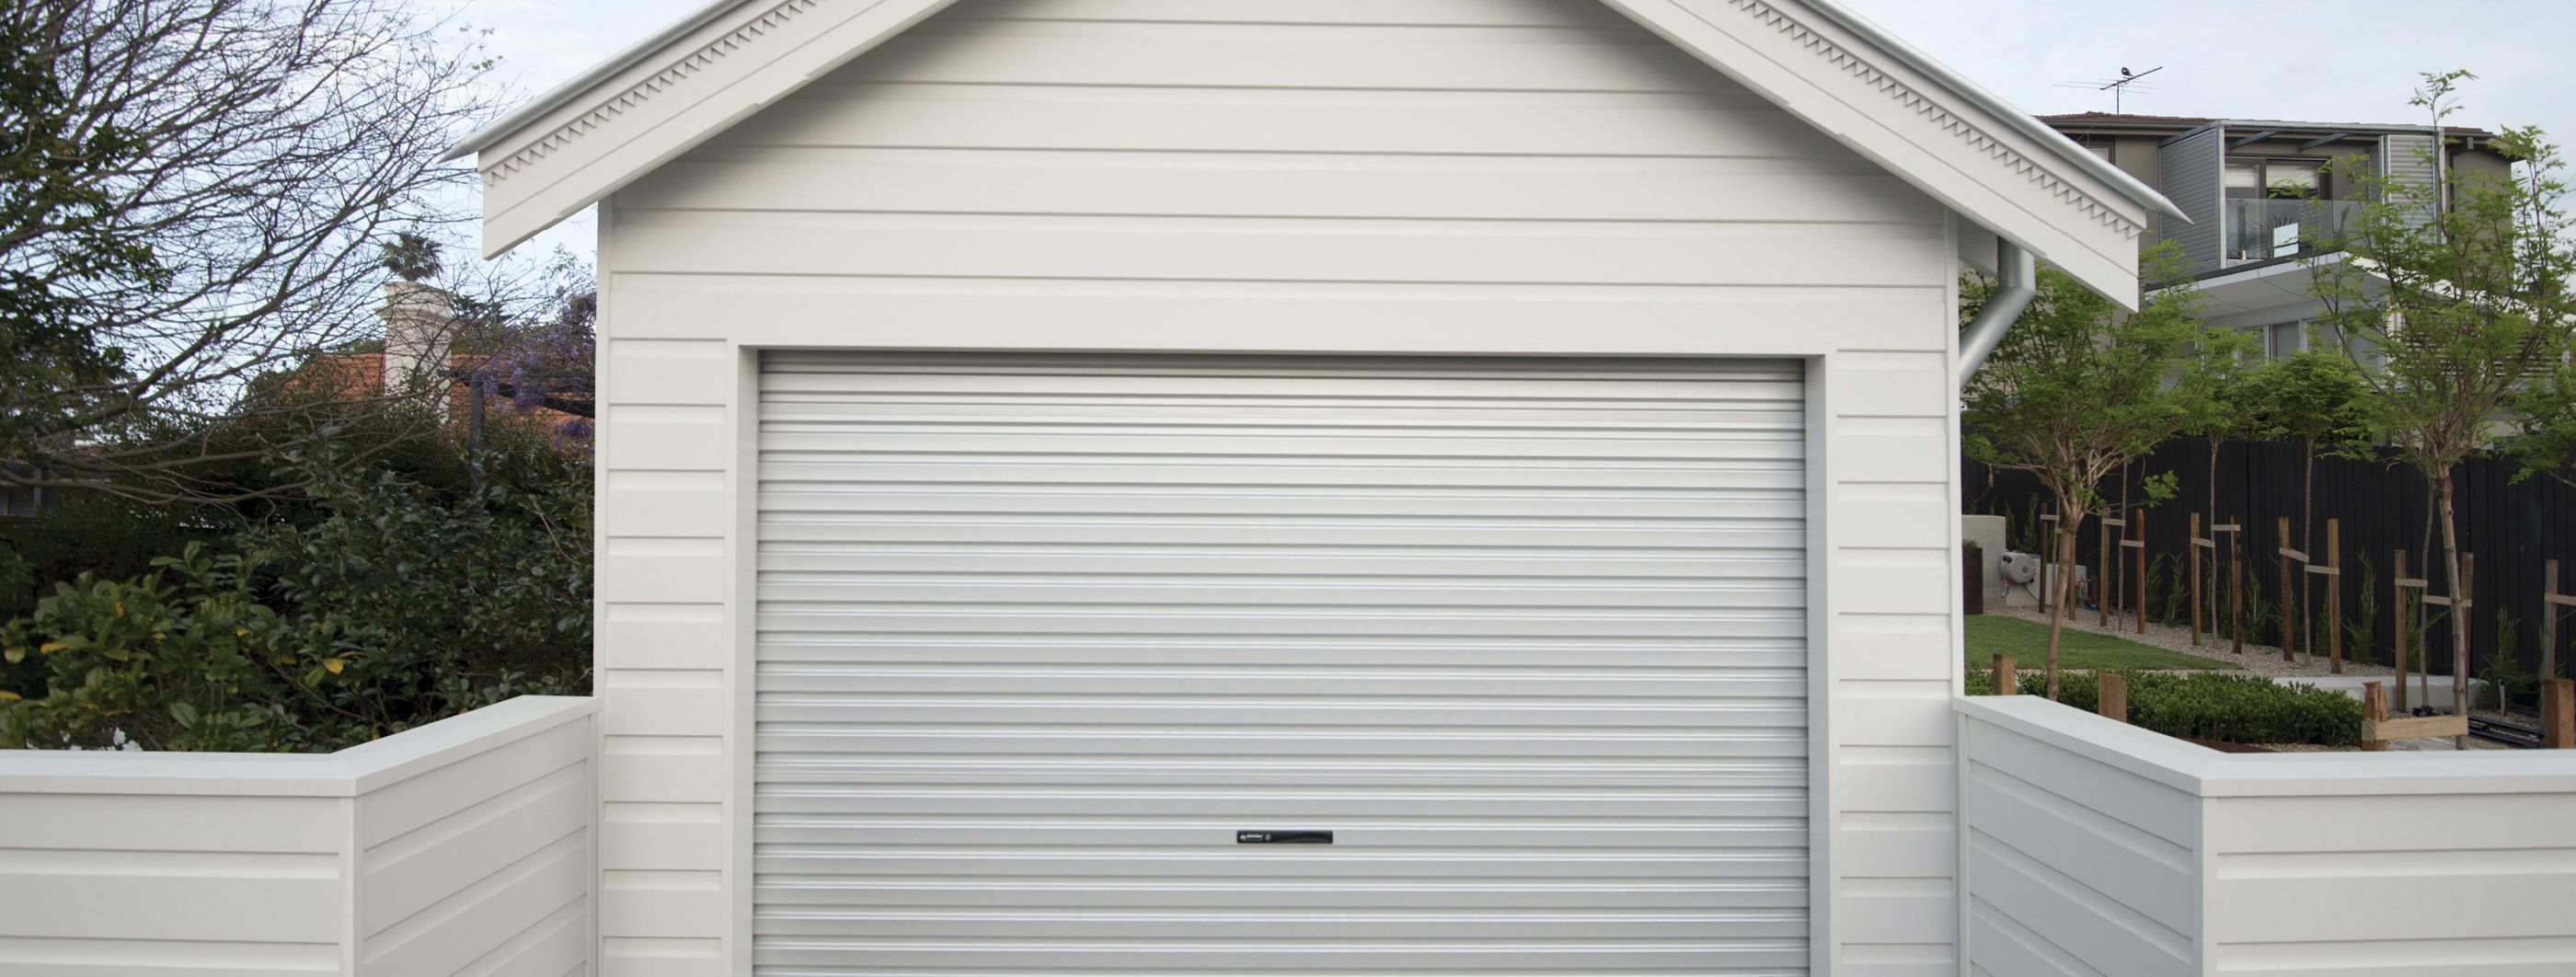 Garage doors & Garage doors | COLORBOND® steel